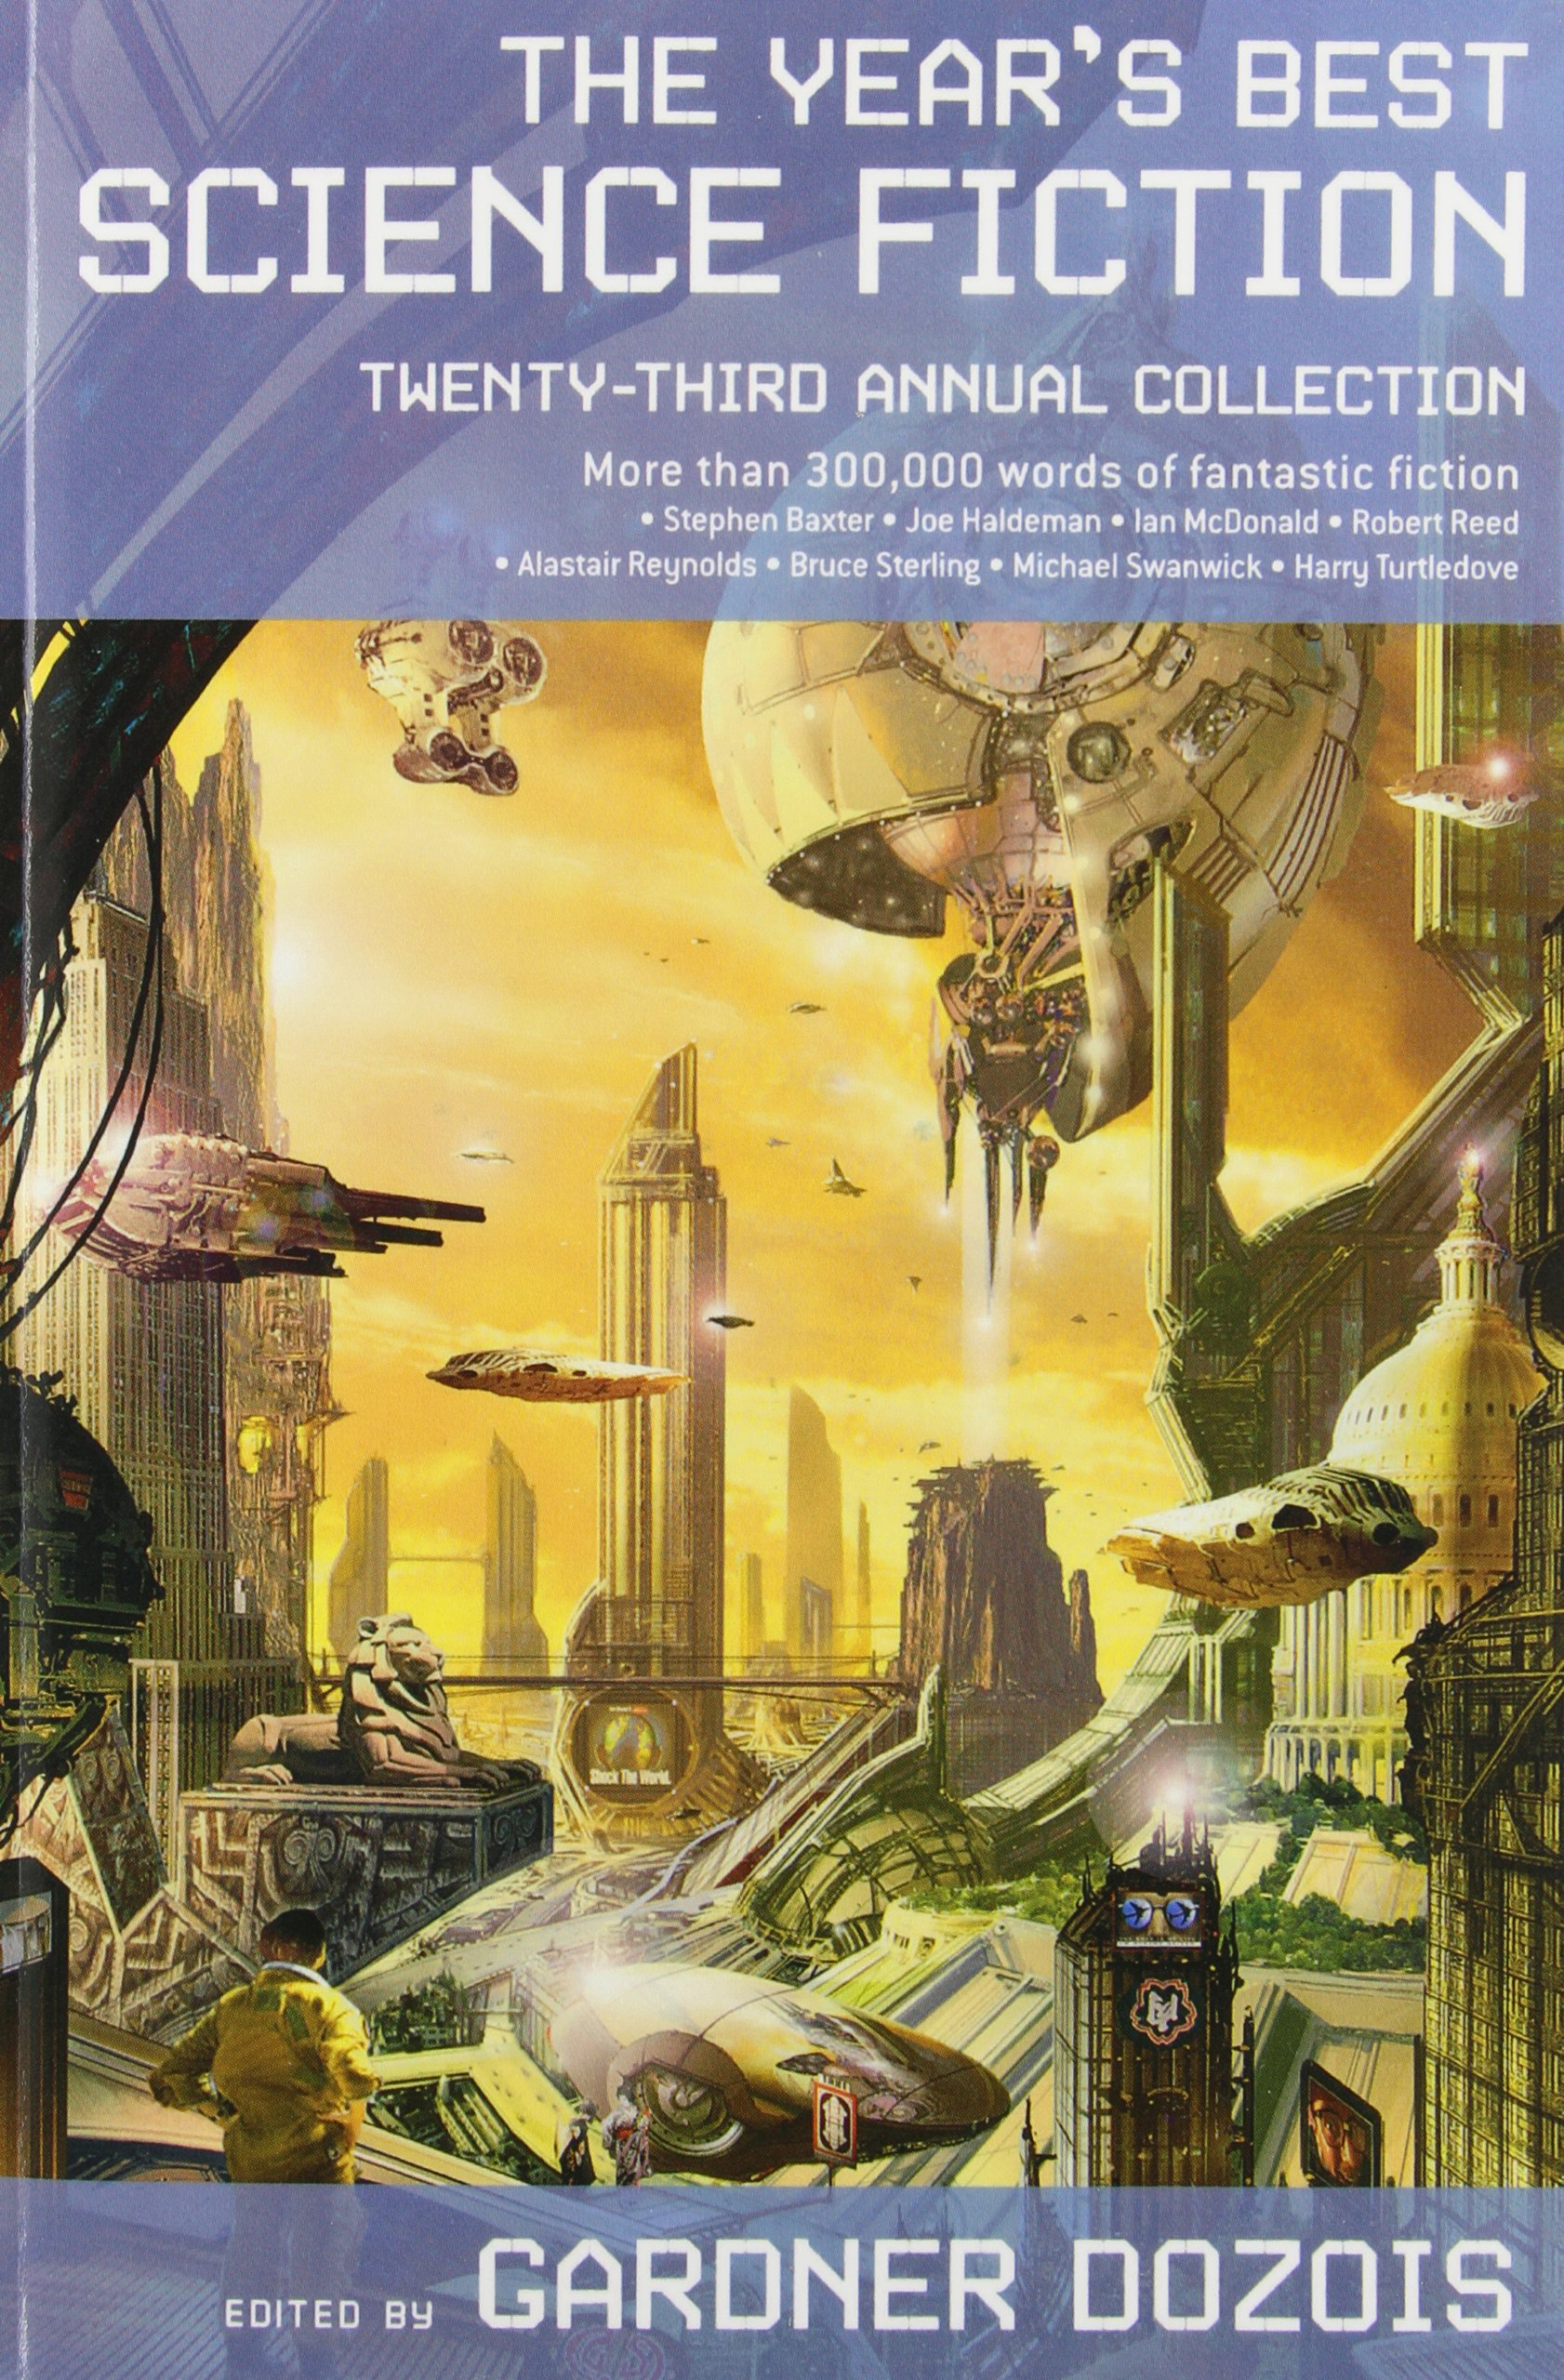 Publication: The Year's Best Science Fiction: Second Annual Collection